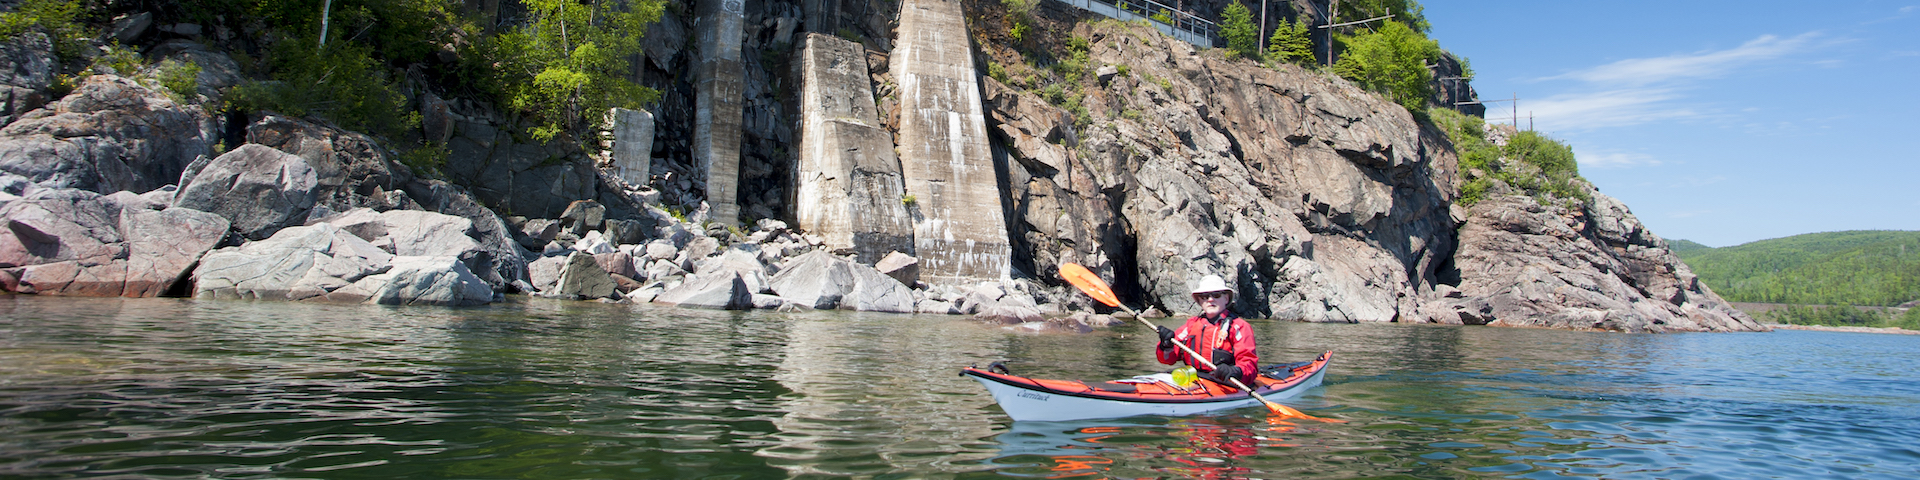 Lake Superior - Sea Kayak Rossport to Pukaskwa by Naturally Superior Adventures - Image 233